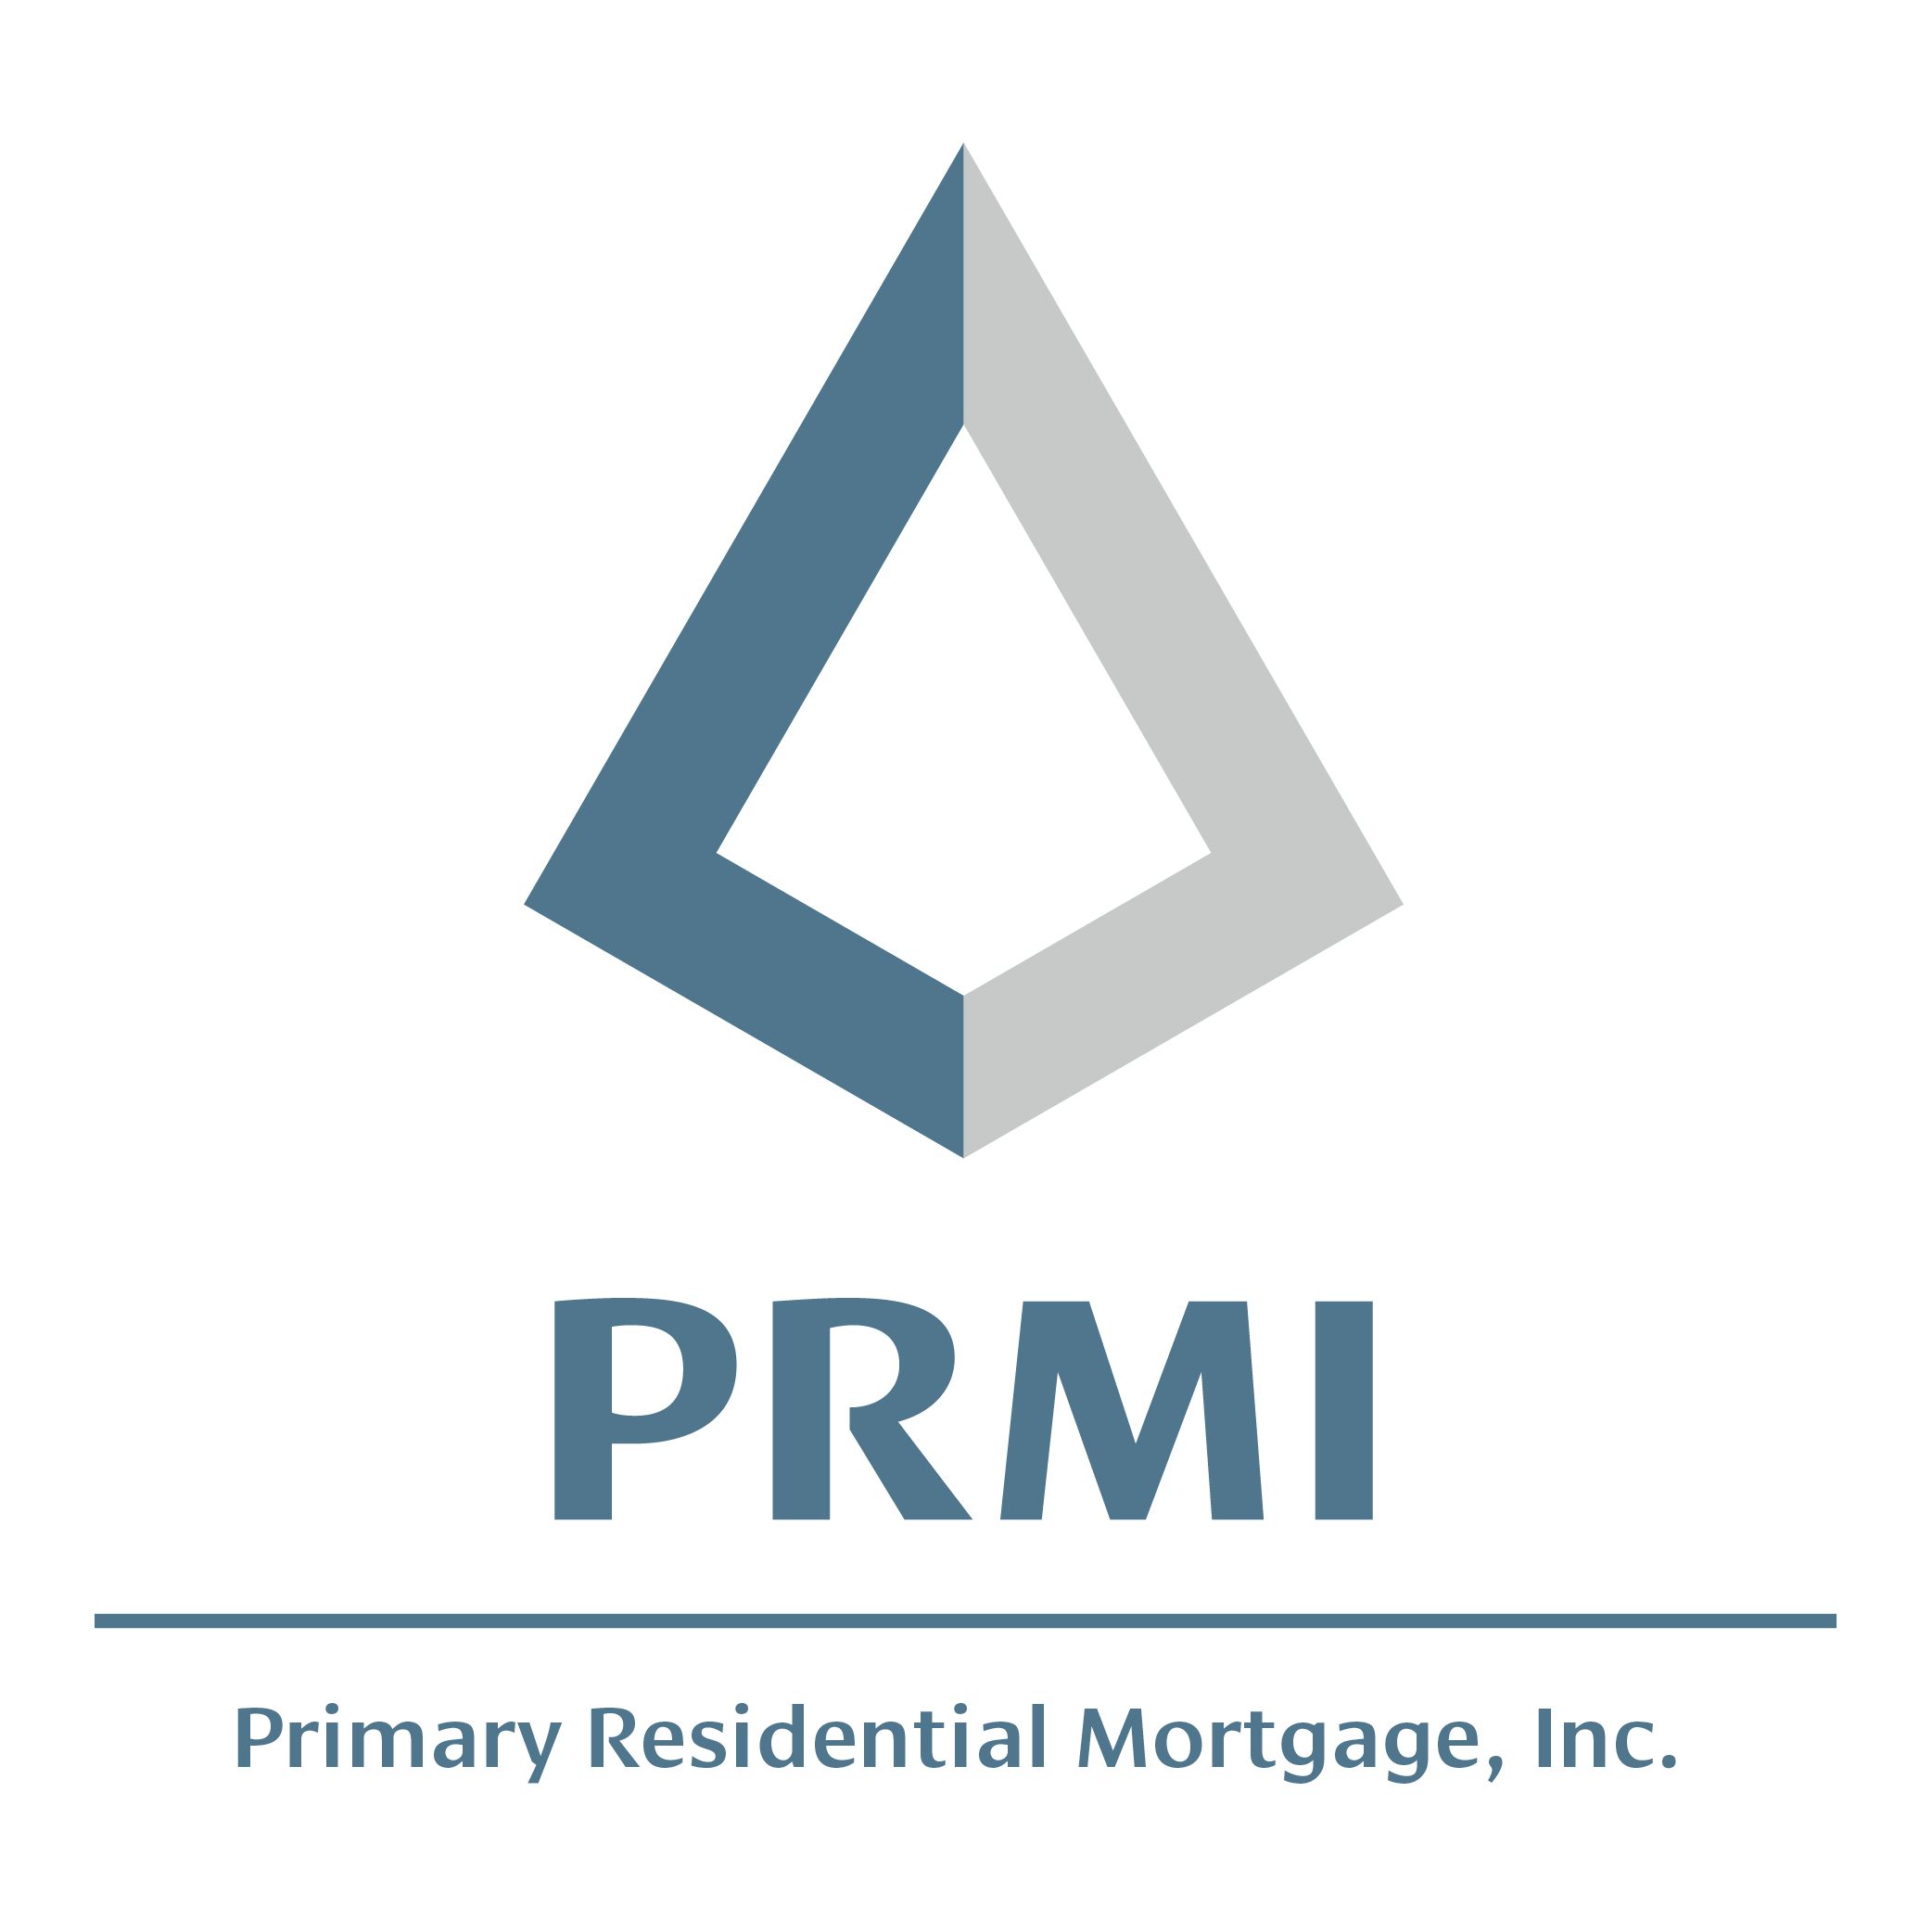 Primary Residential Mortgage, Inc. - Prairieville, LA 70769 - (504)300-1298 | ShowMeLocal.com